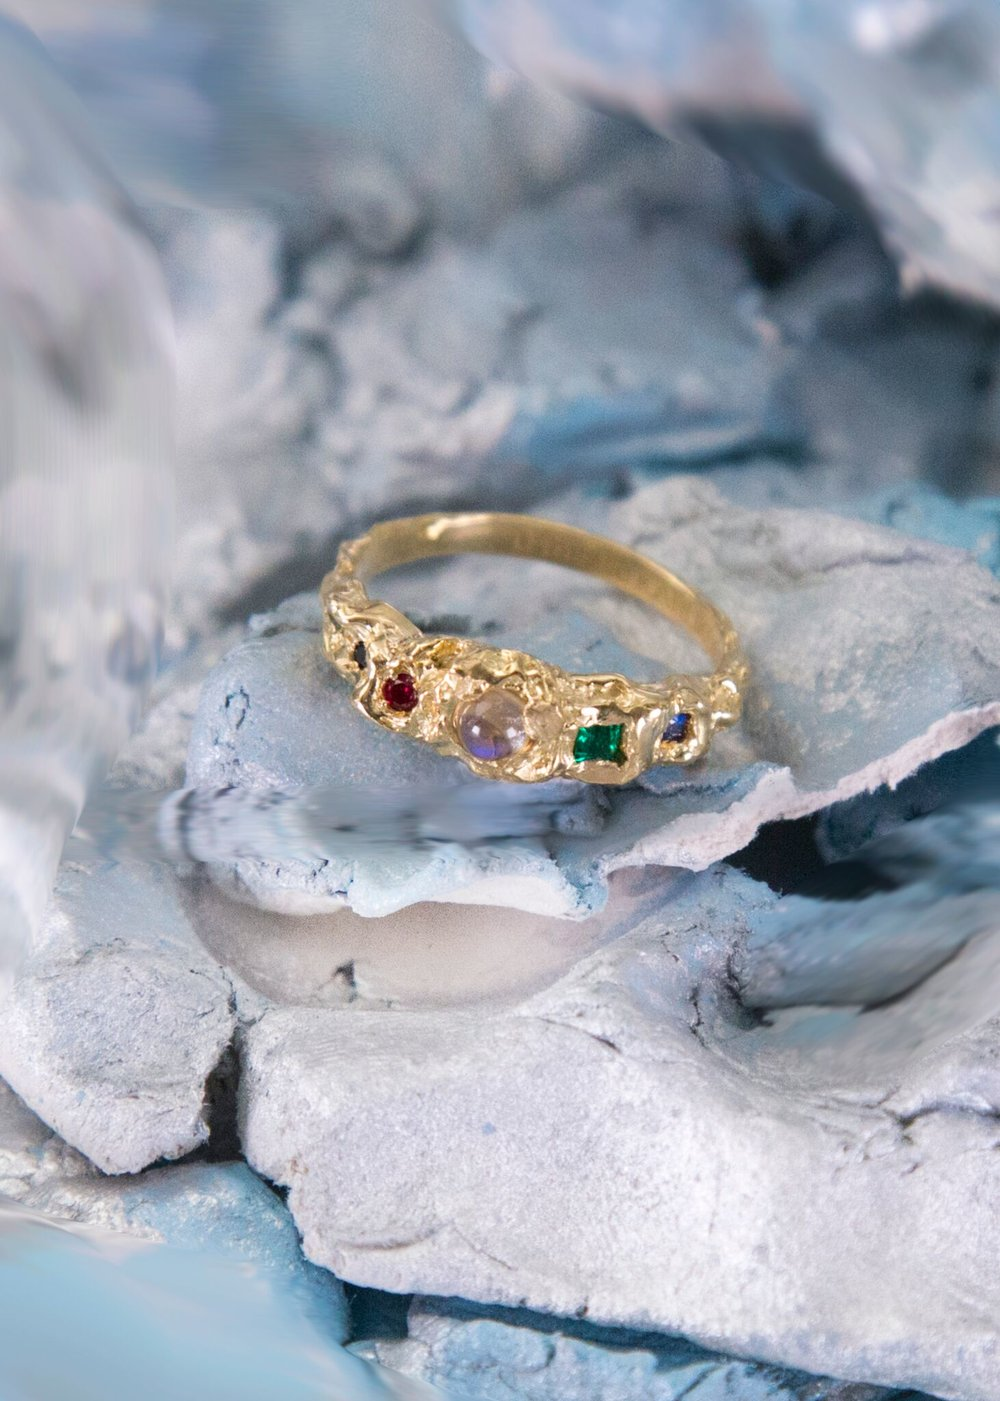 Magical Wizard Ring for Matt | 18kt yellow gold with moonstone, synthetic emerald, ruby and natural sapphires.